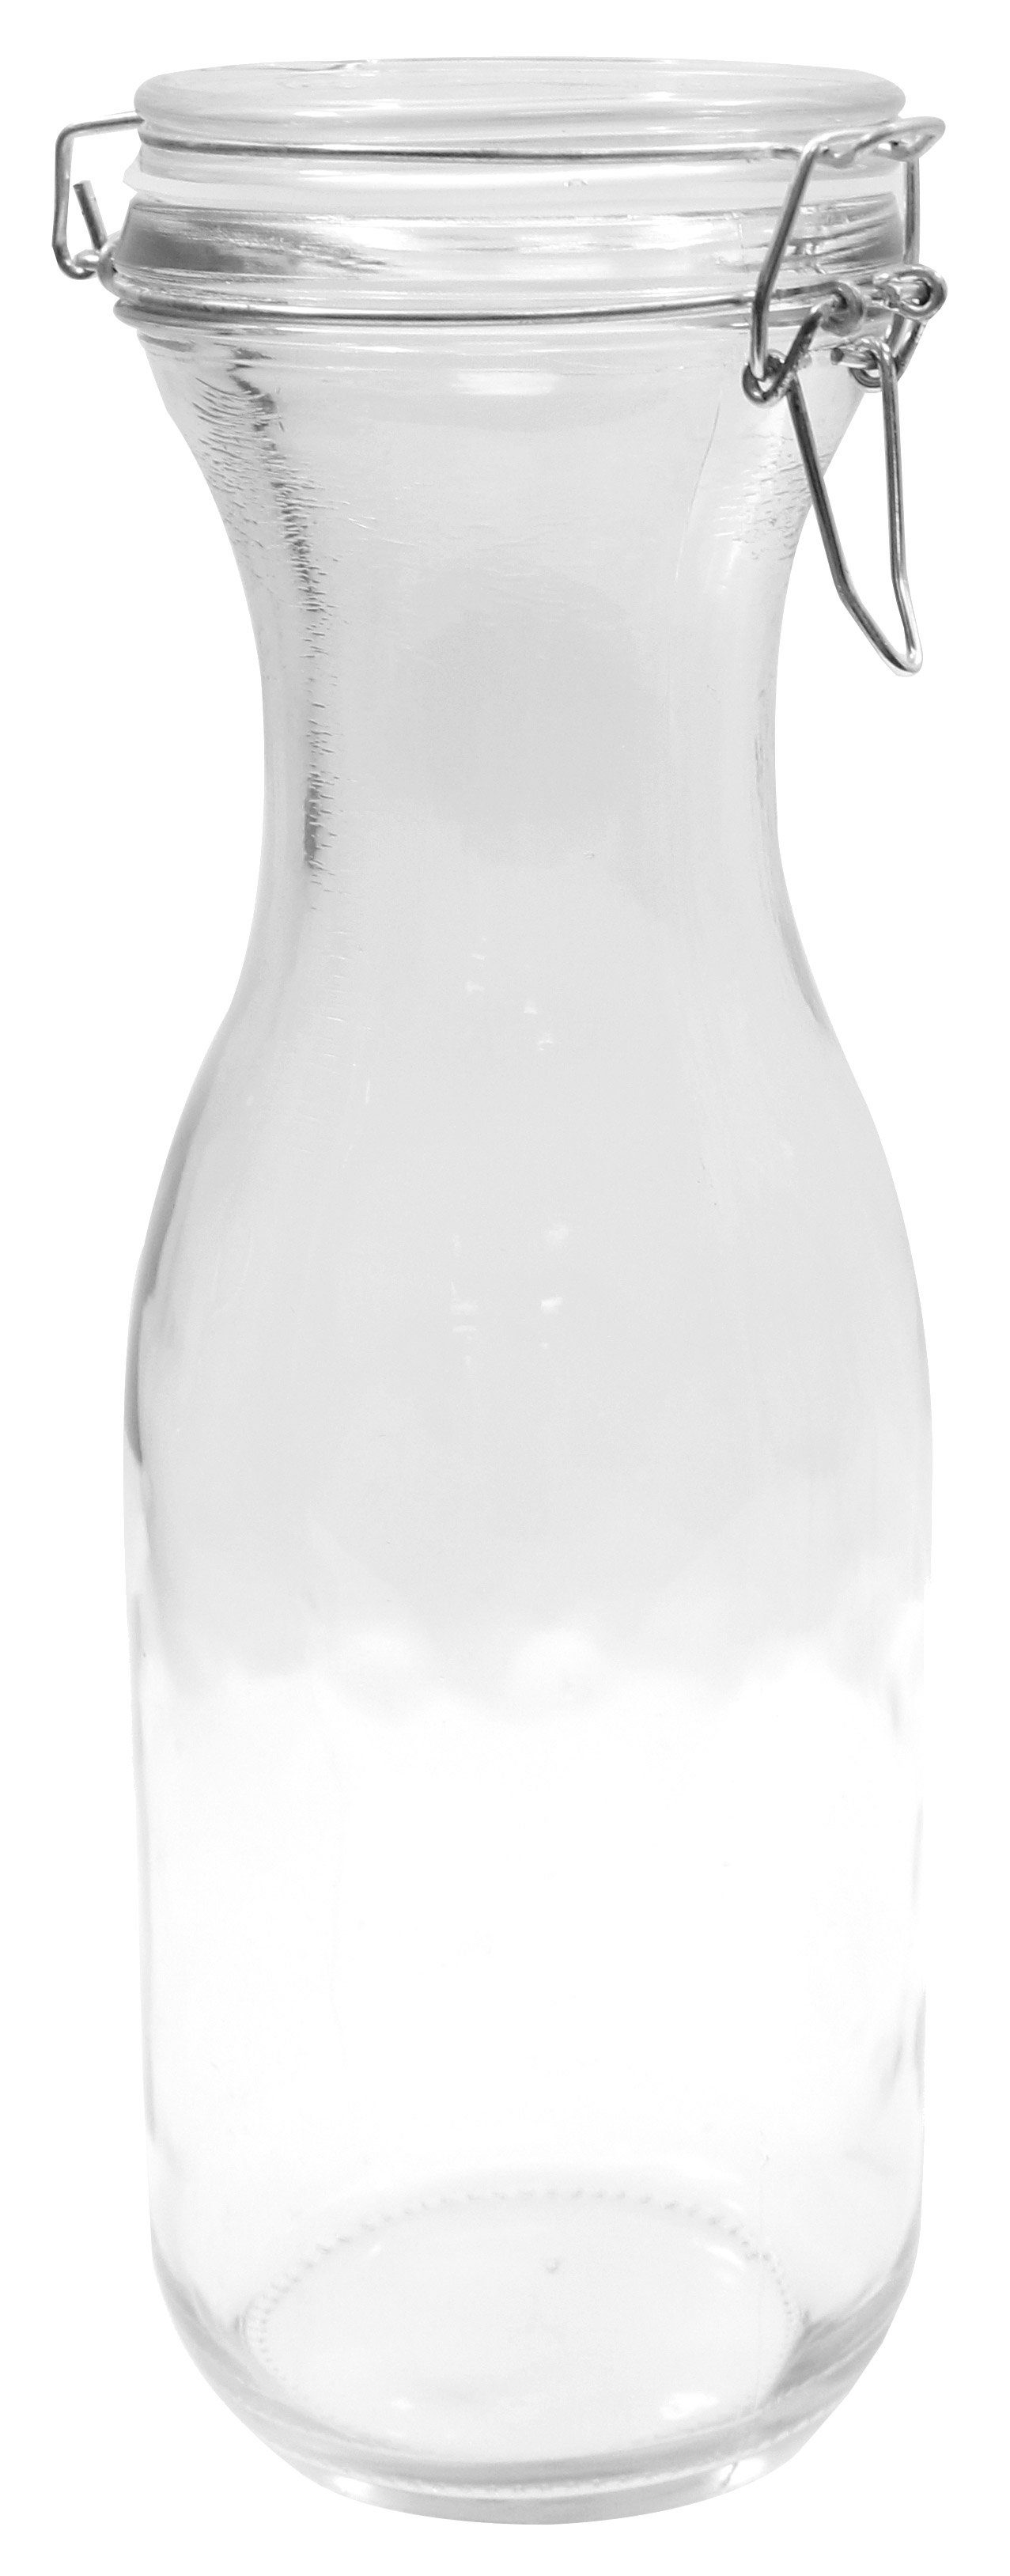 TableCraft Products RGC16 decanter carafe